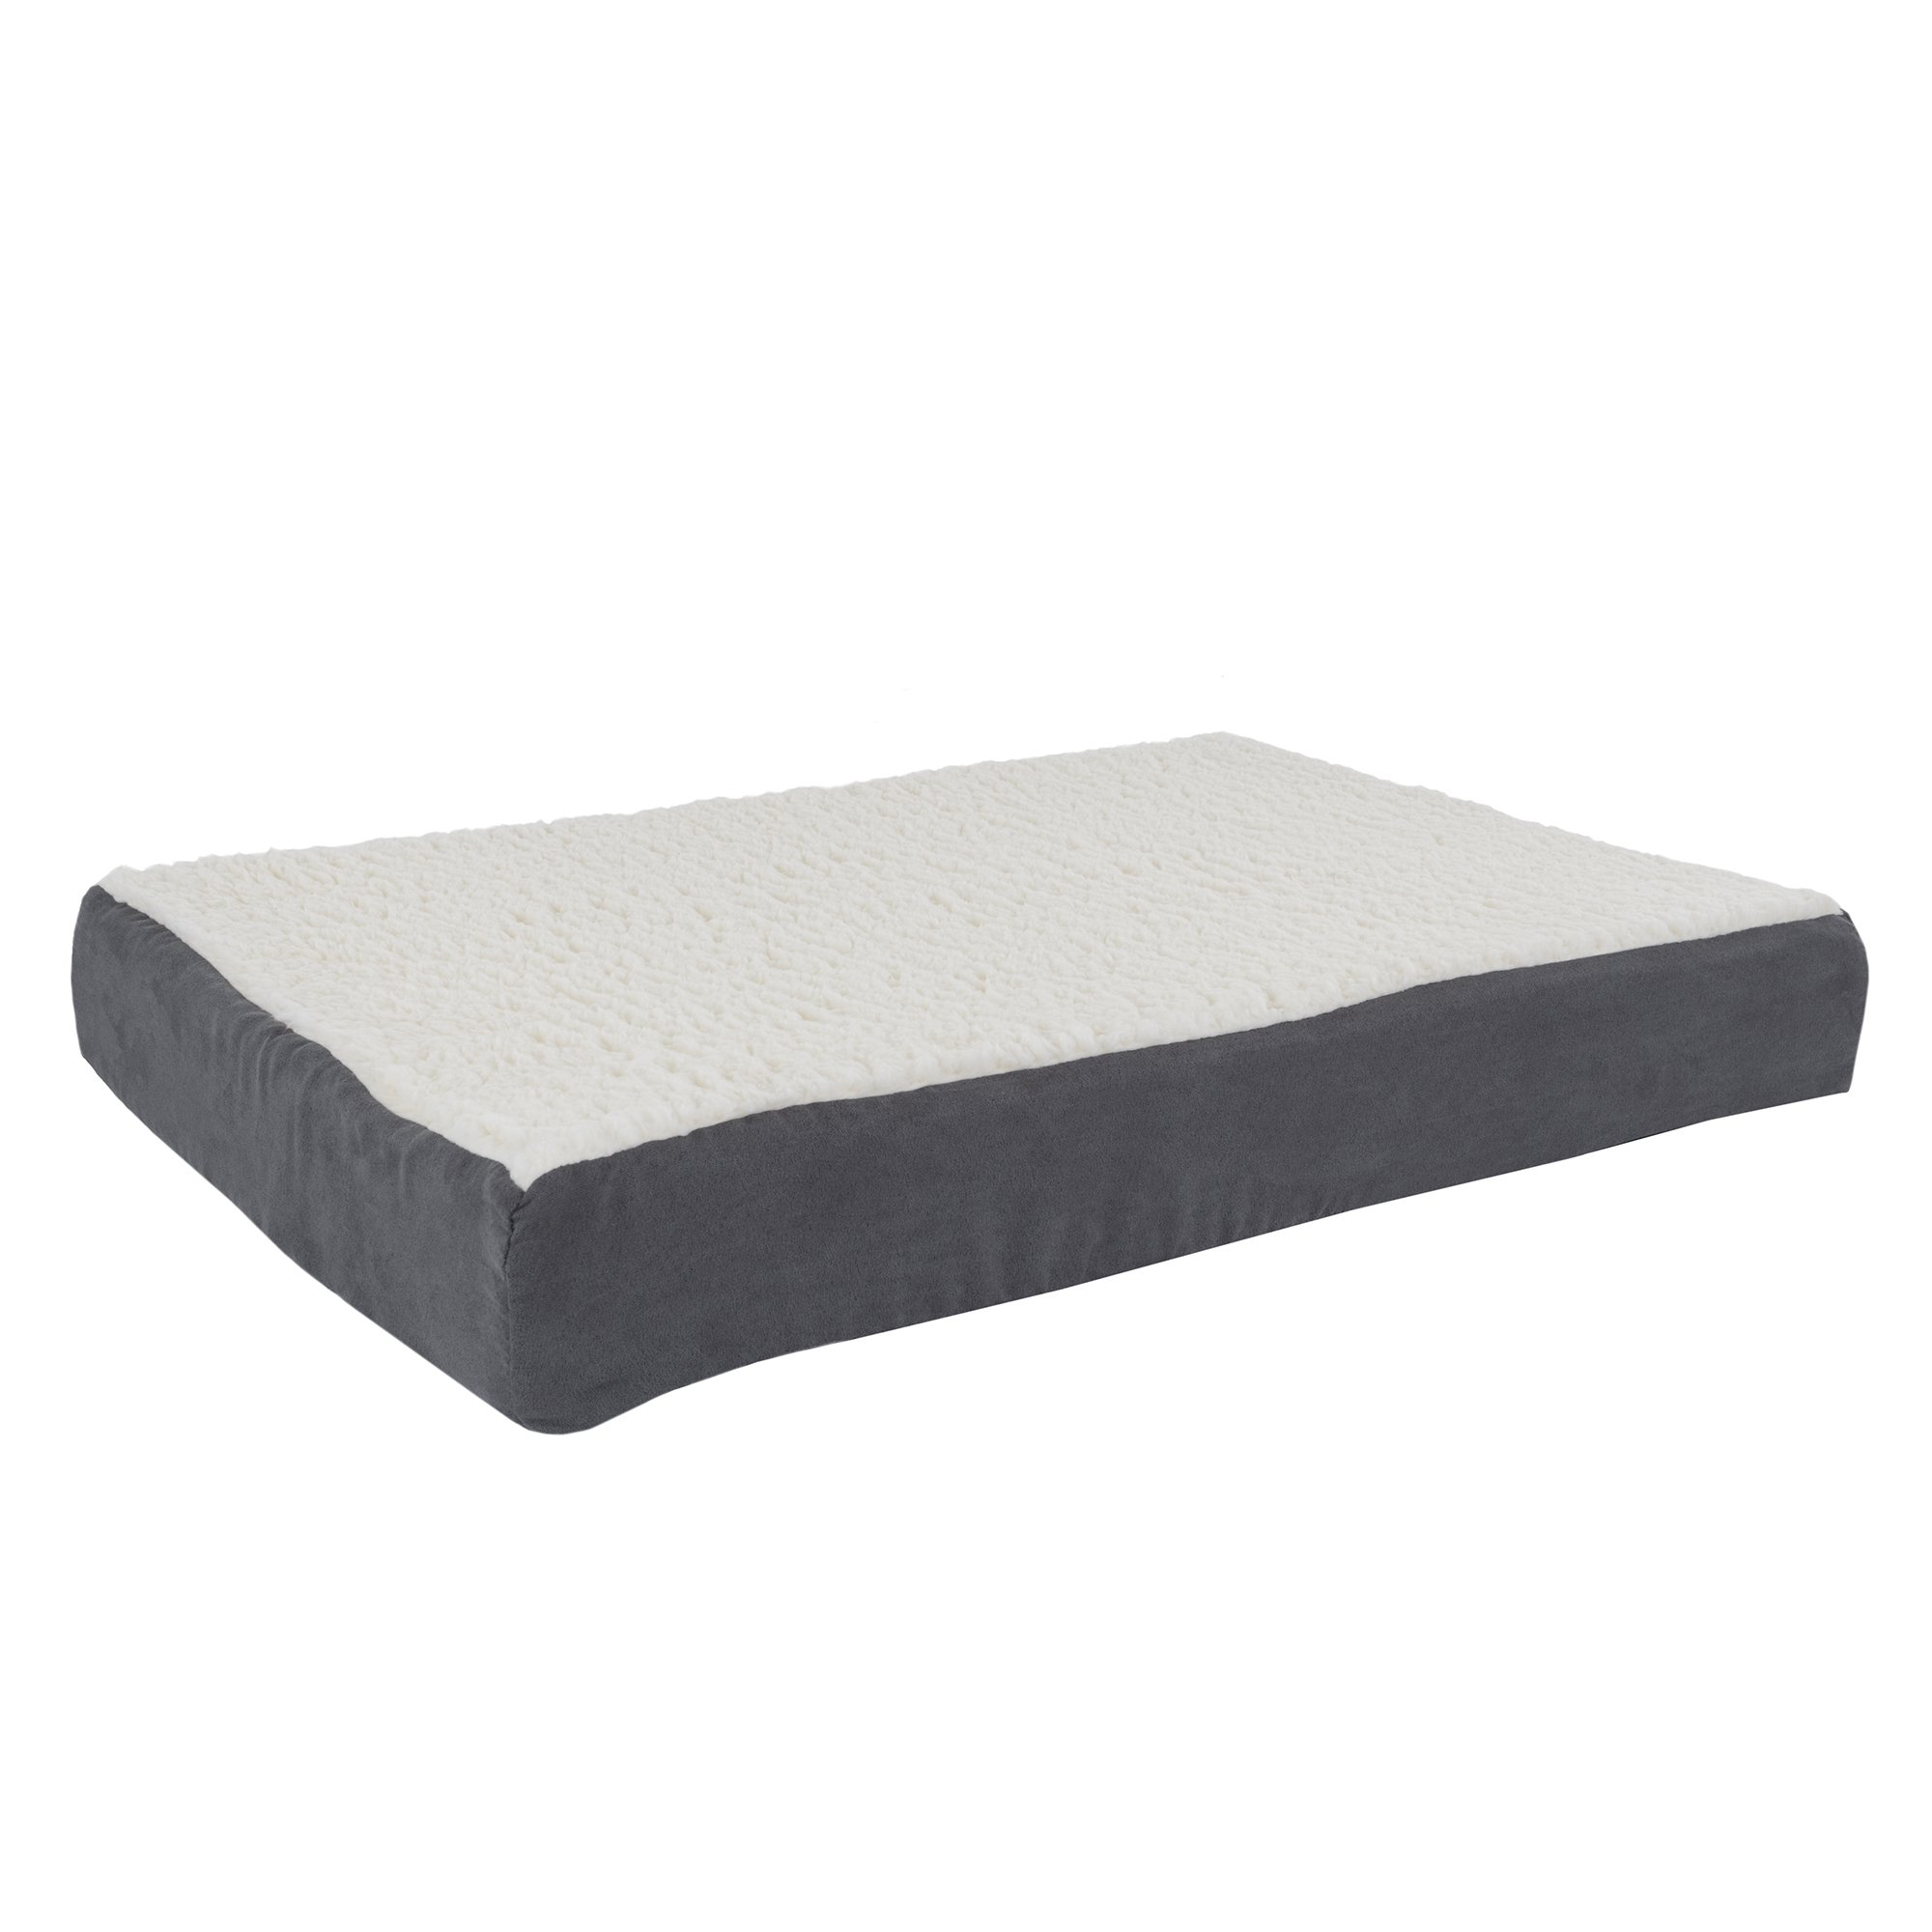 PETMAKER Orthopedic Sherpa Top Pet Bed with Memory Foam and Removable Cover 30x20.5x4 Gray by PETMAKER